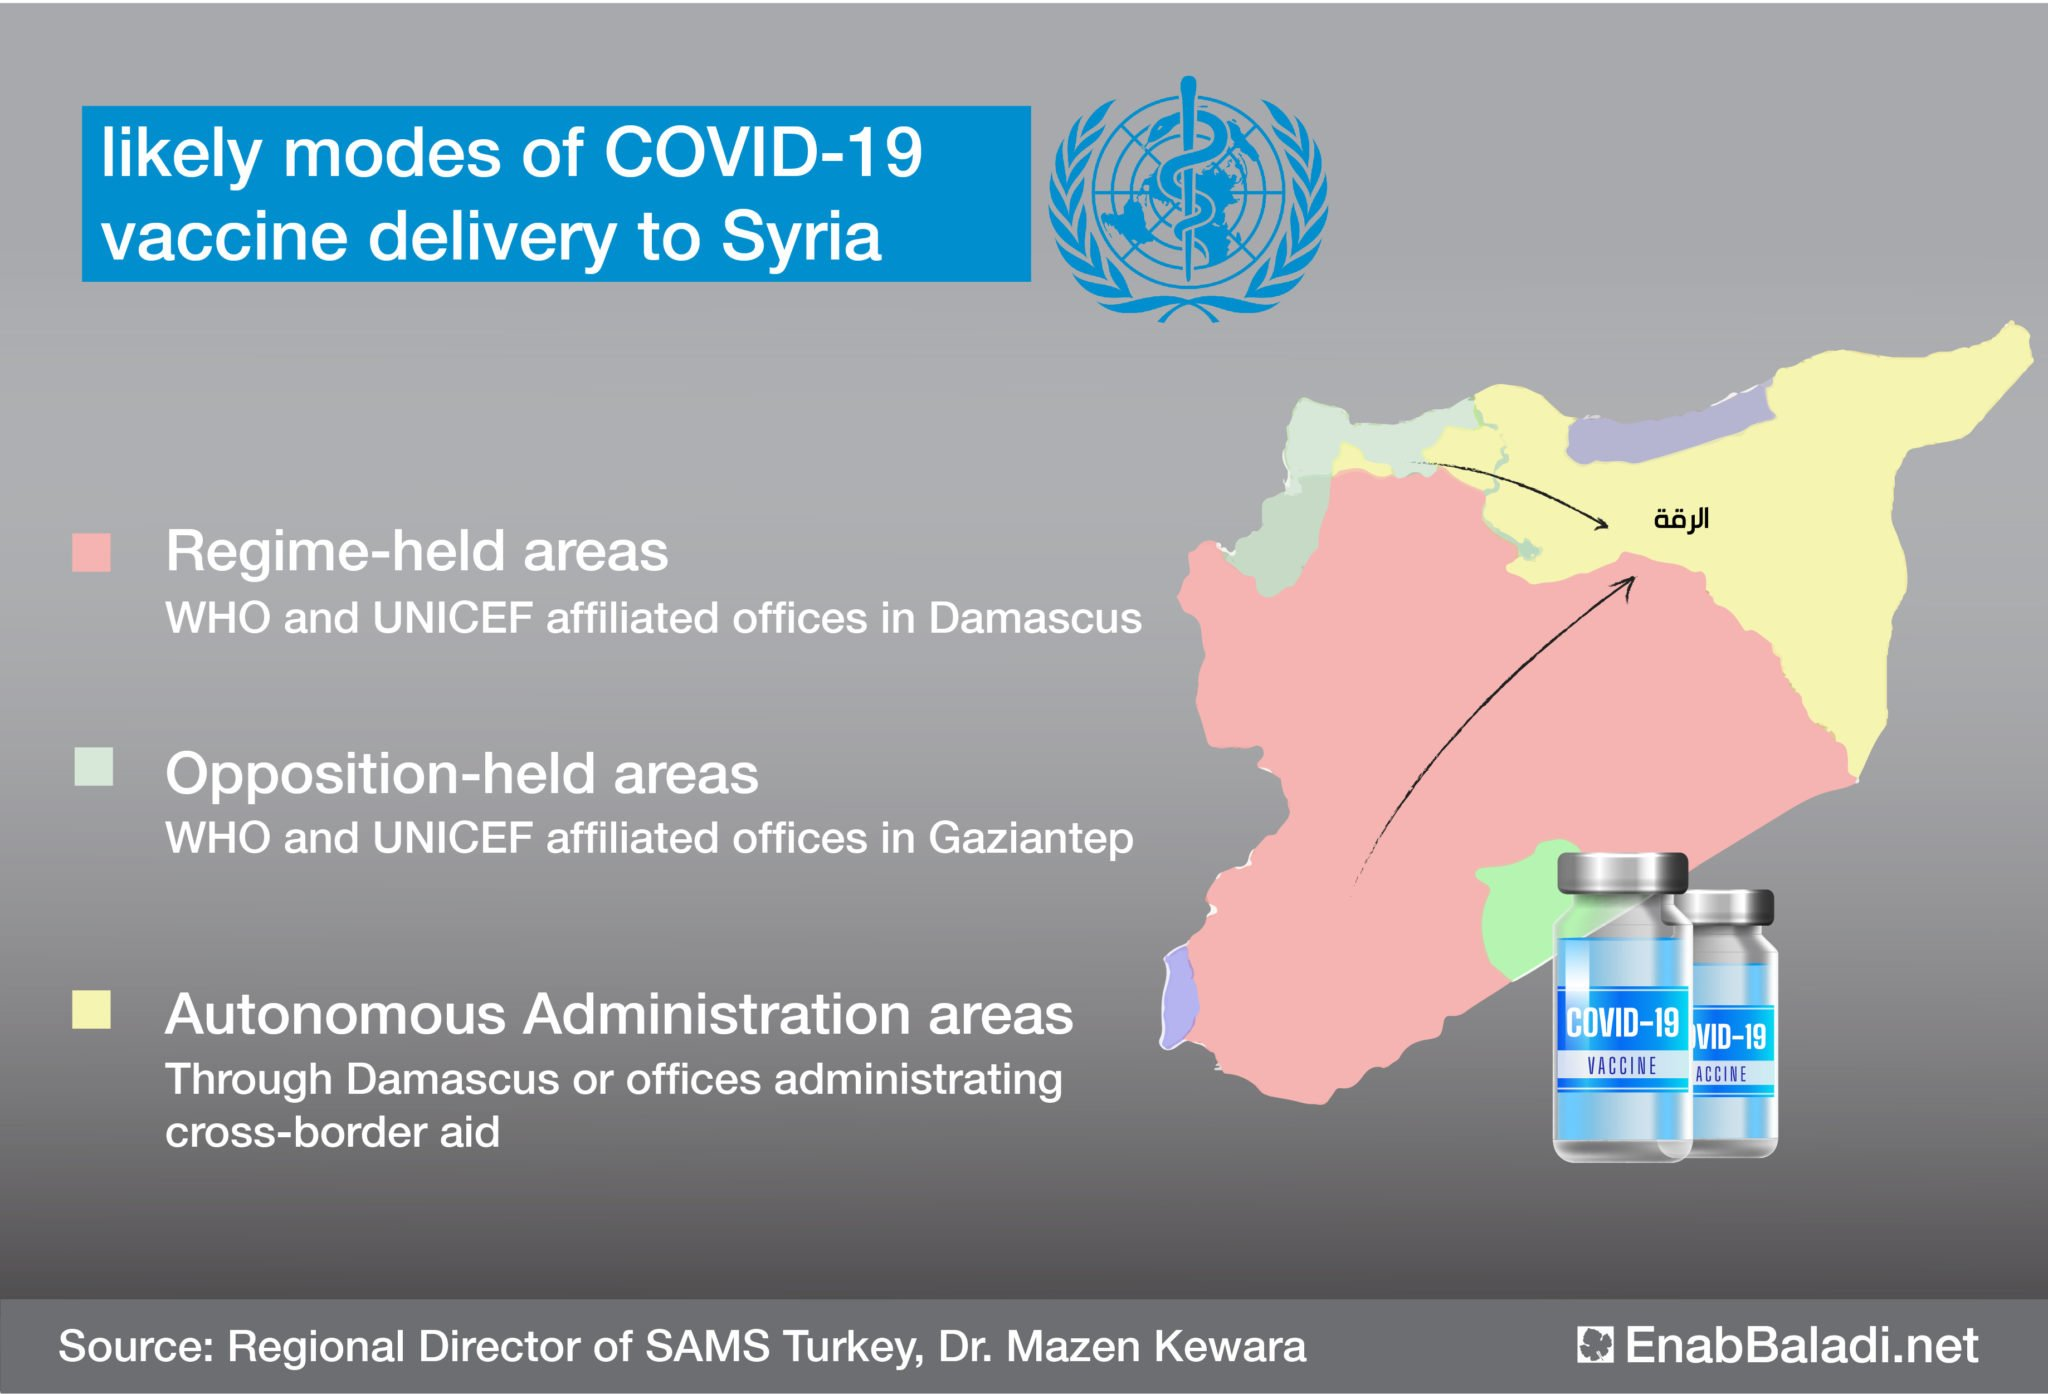 Likely supply lines of COVID-19 vaccine to Syria